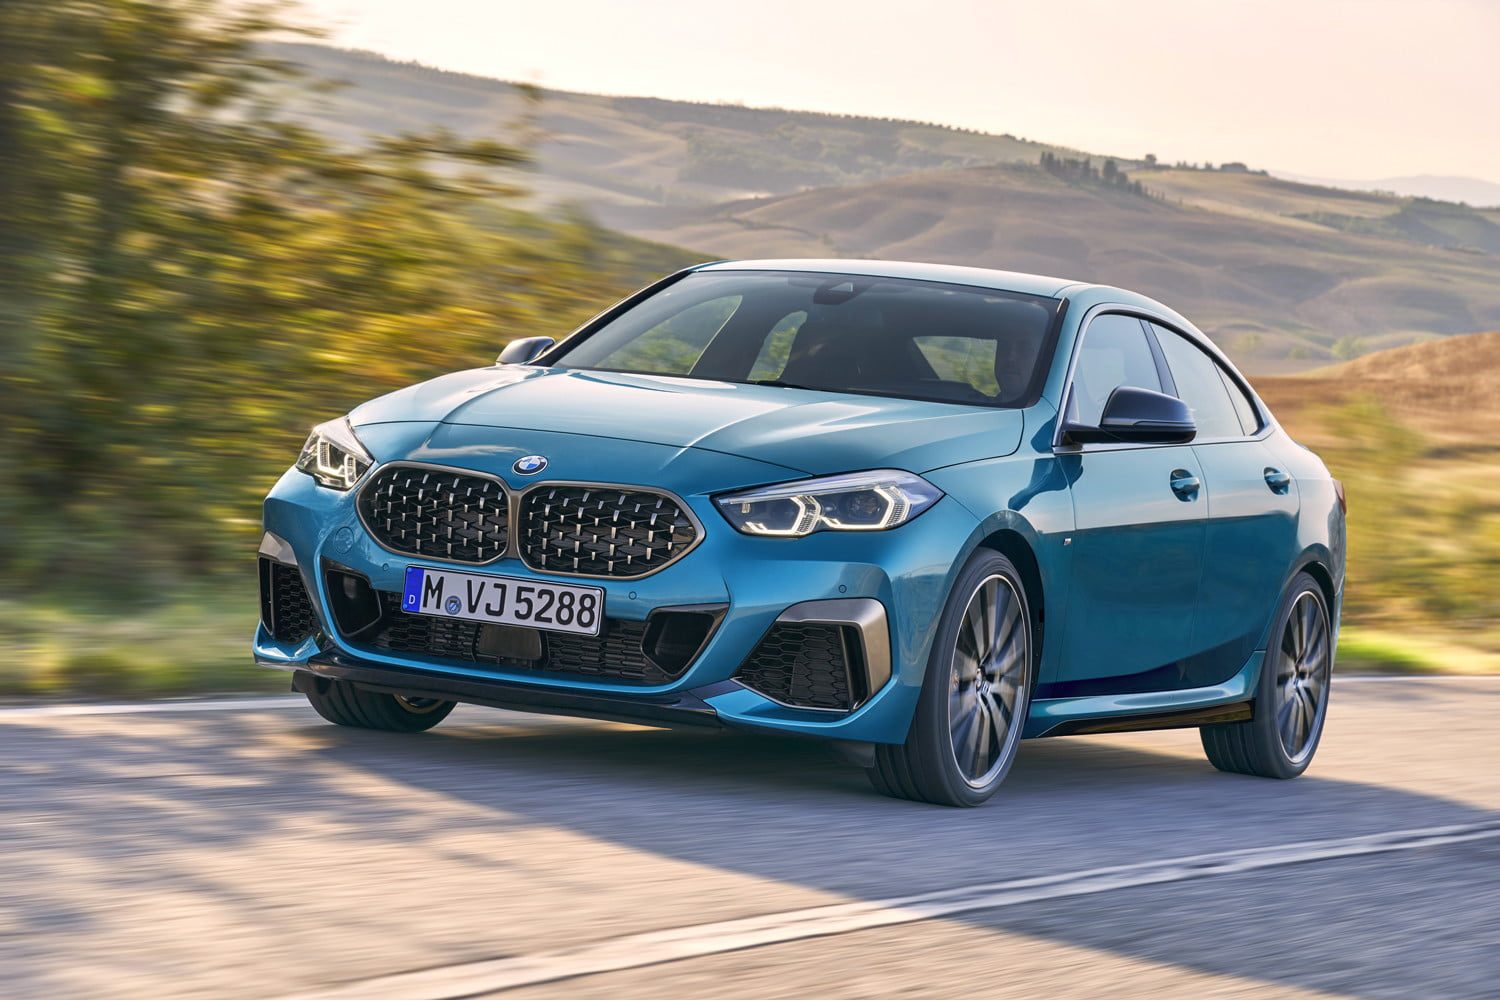 2020 bmw 228i m235i gran coupe unveiled as entry level sedans 2 series gc off